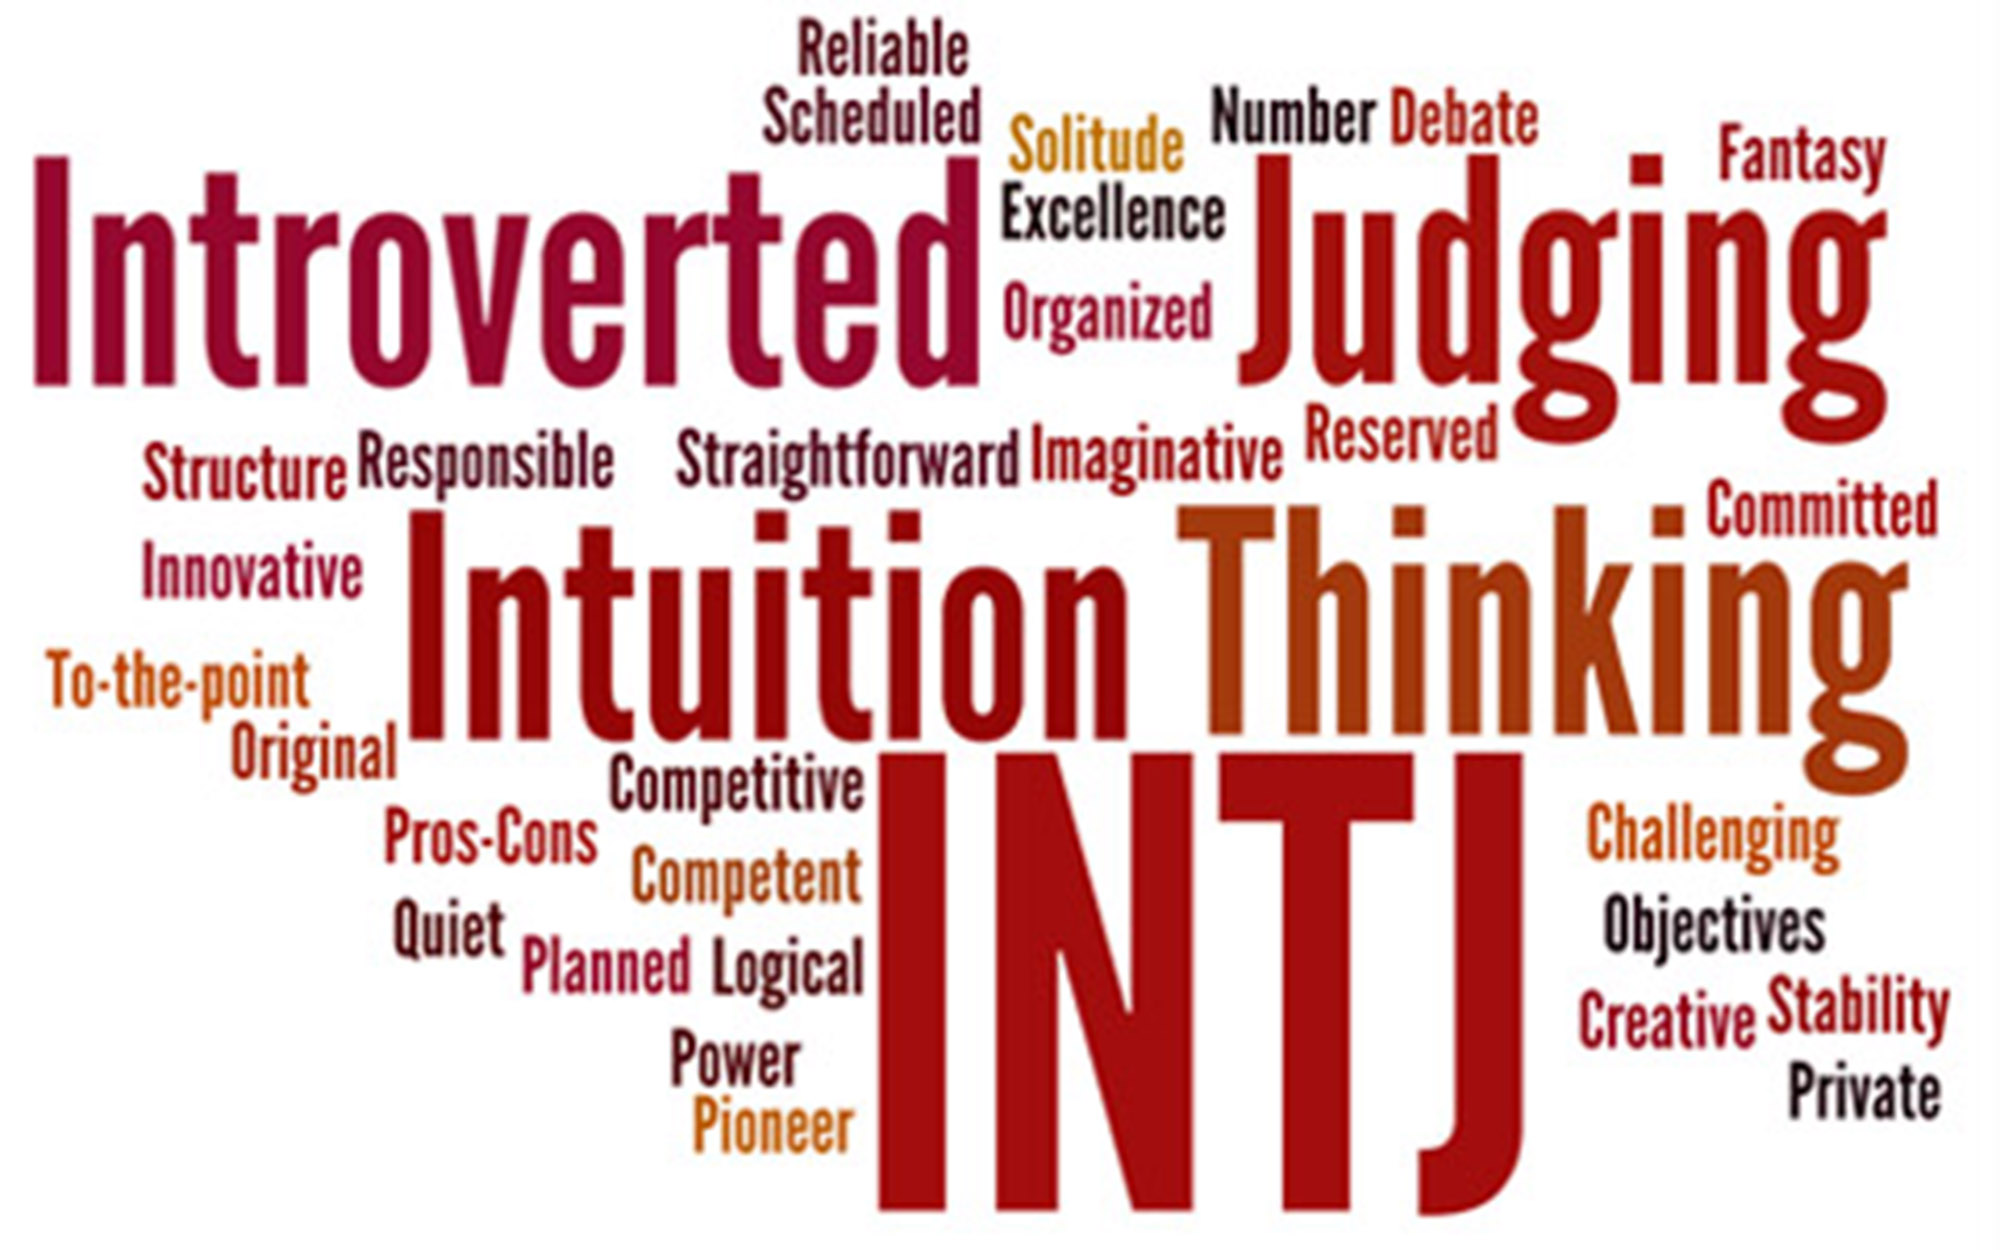 2. INTJ personality type